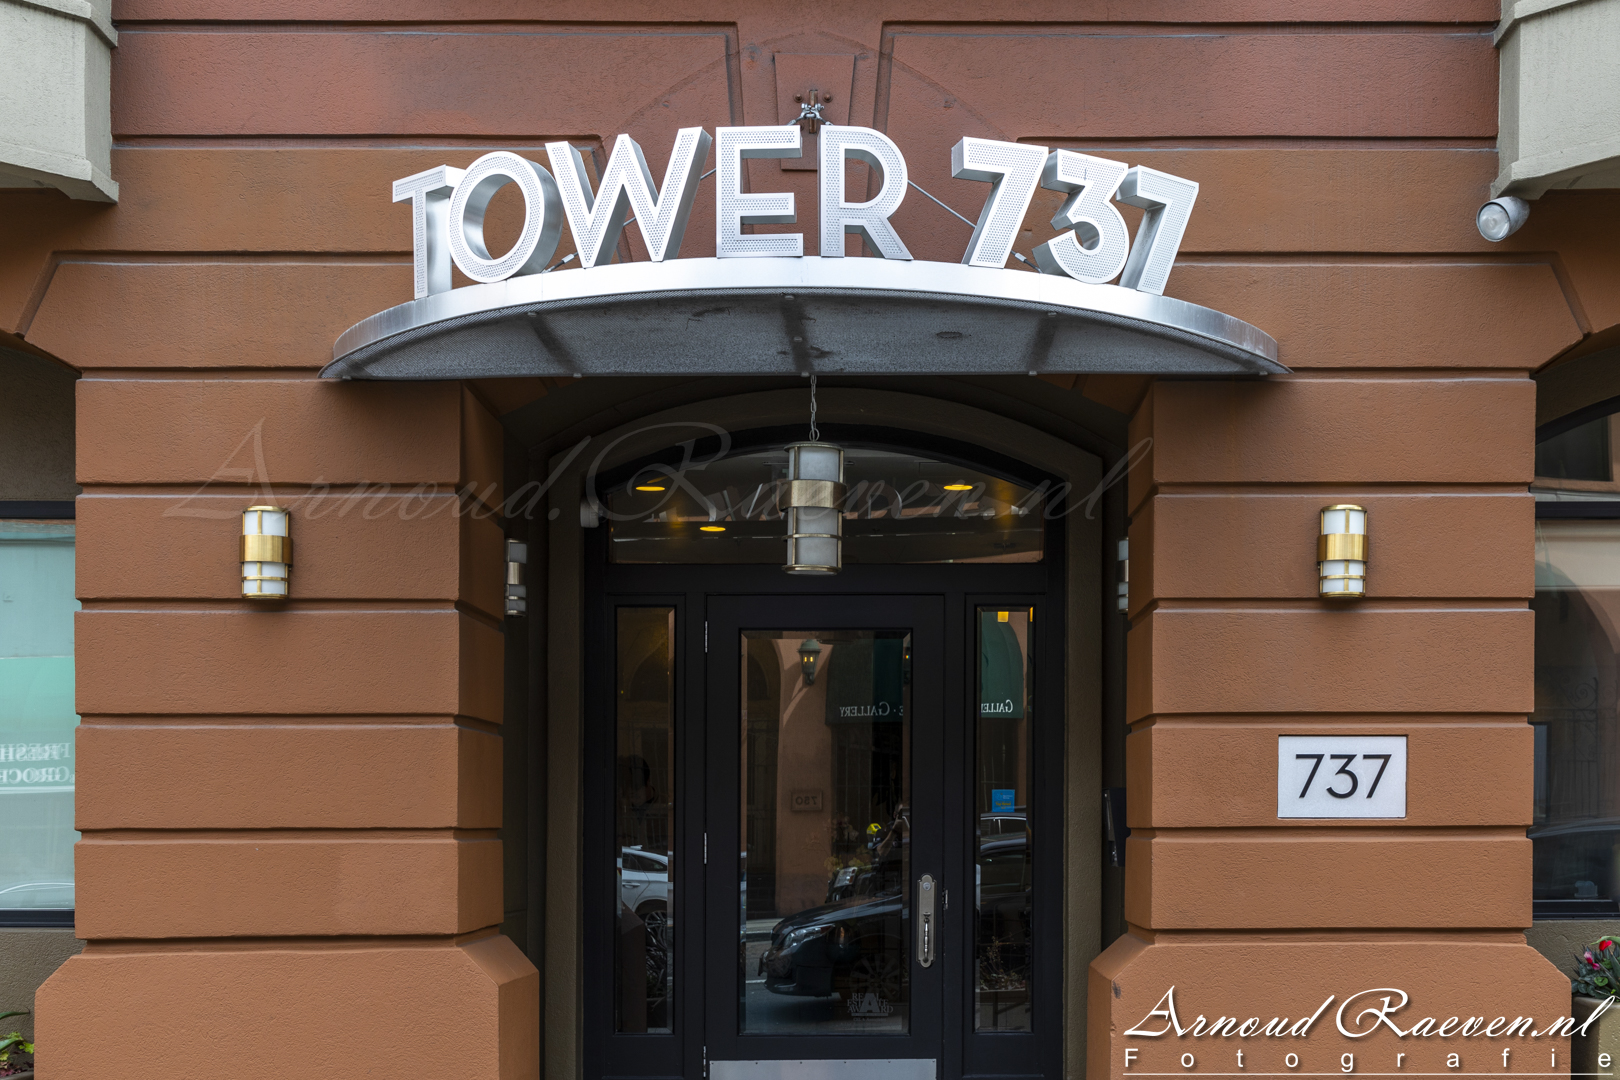 Tower 737